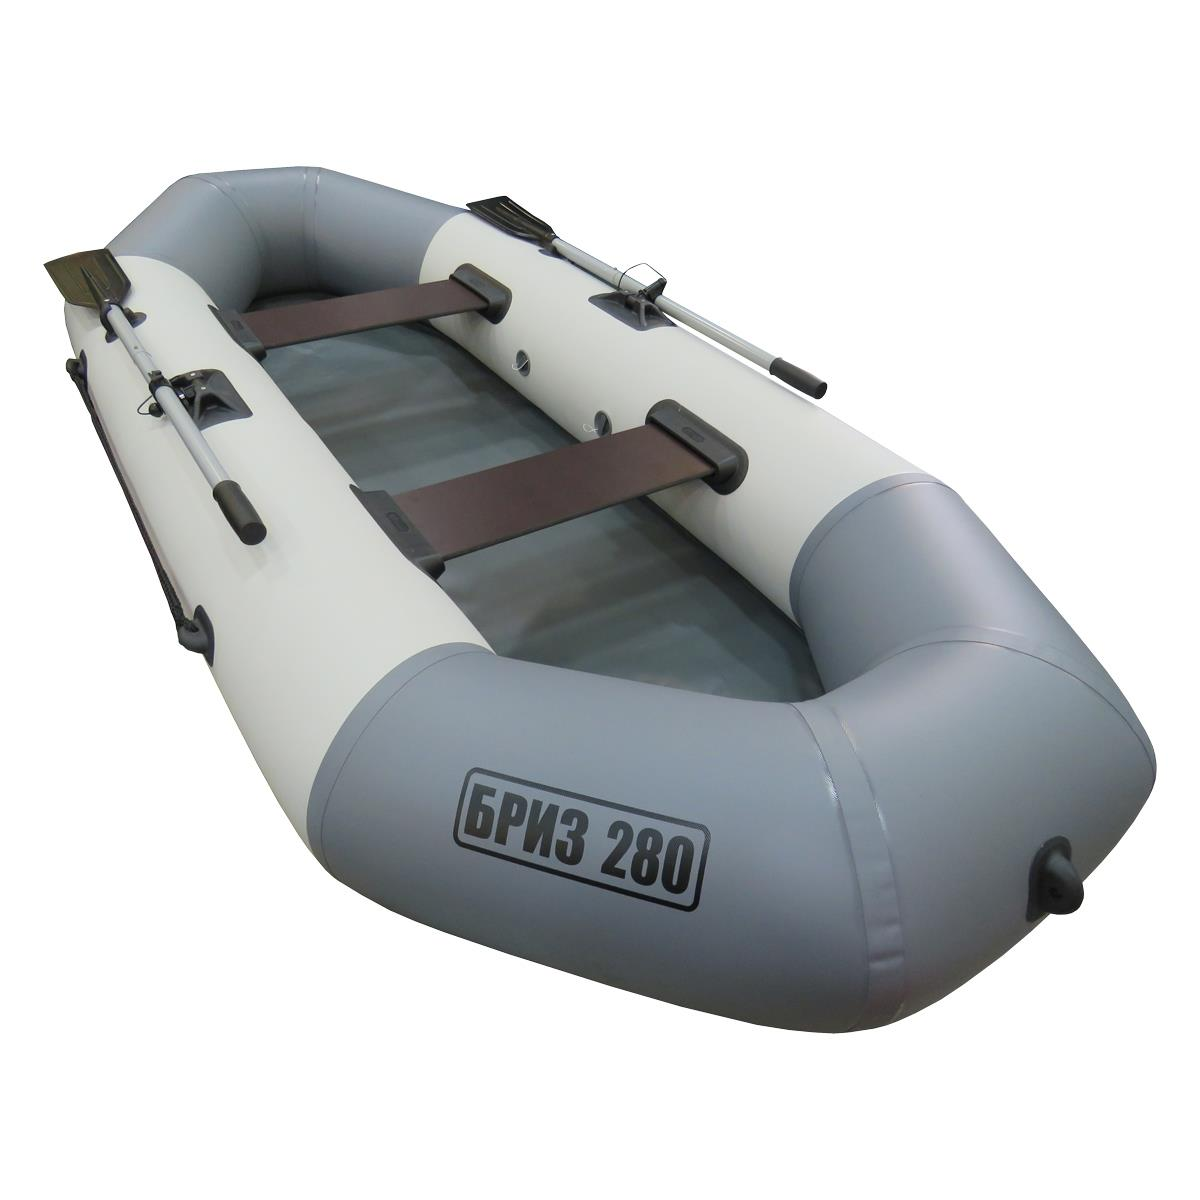 Boat Sea Breeze 280 (white/gray)/Boat BRIZ 280N (white/gray)